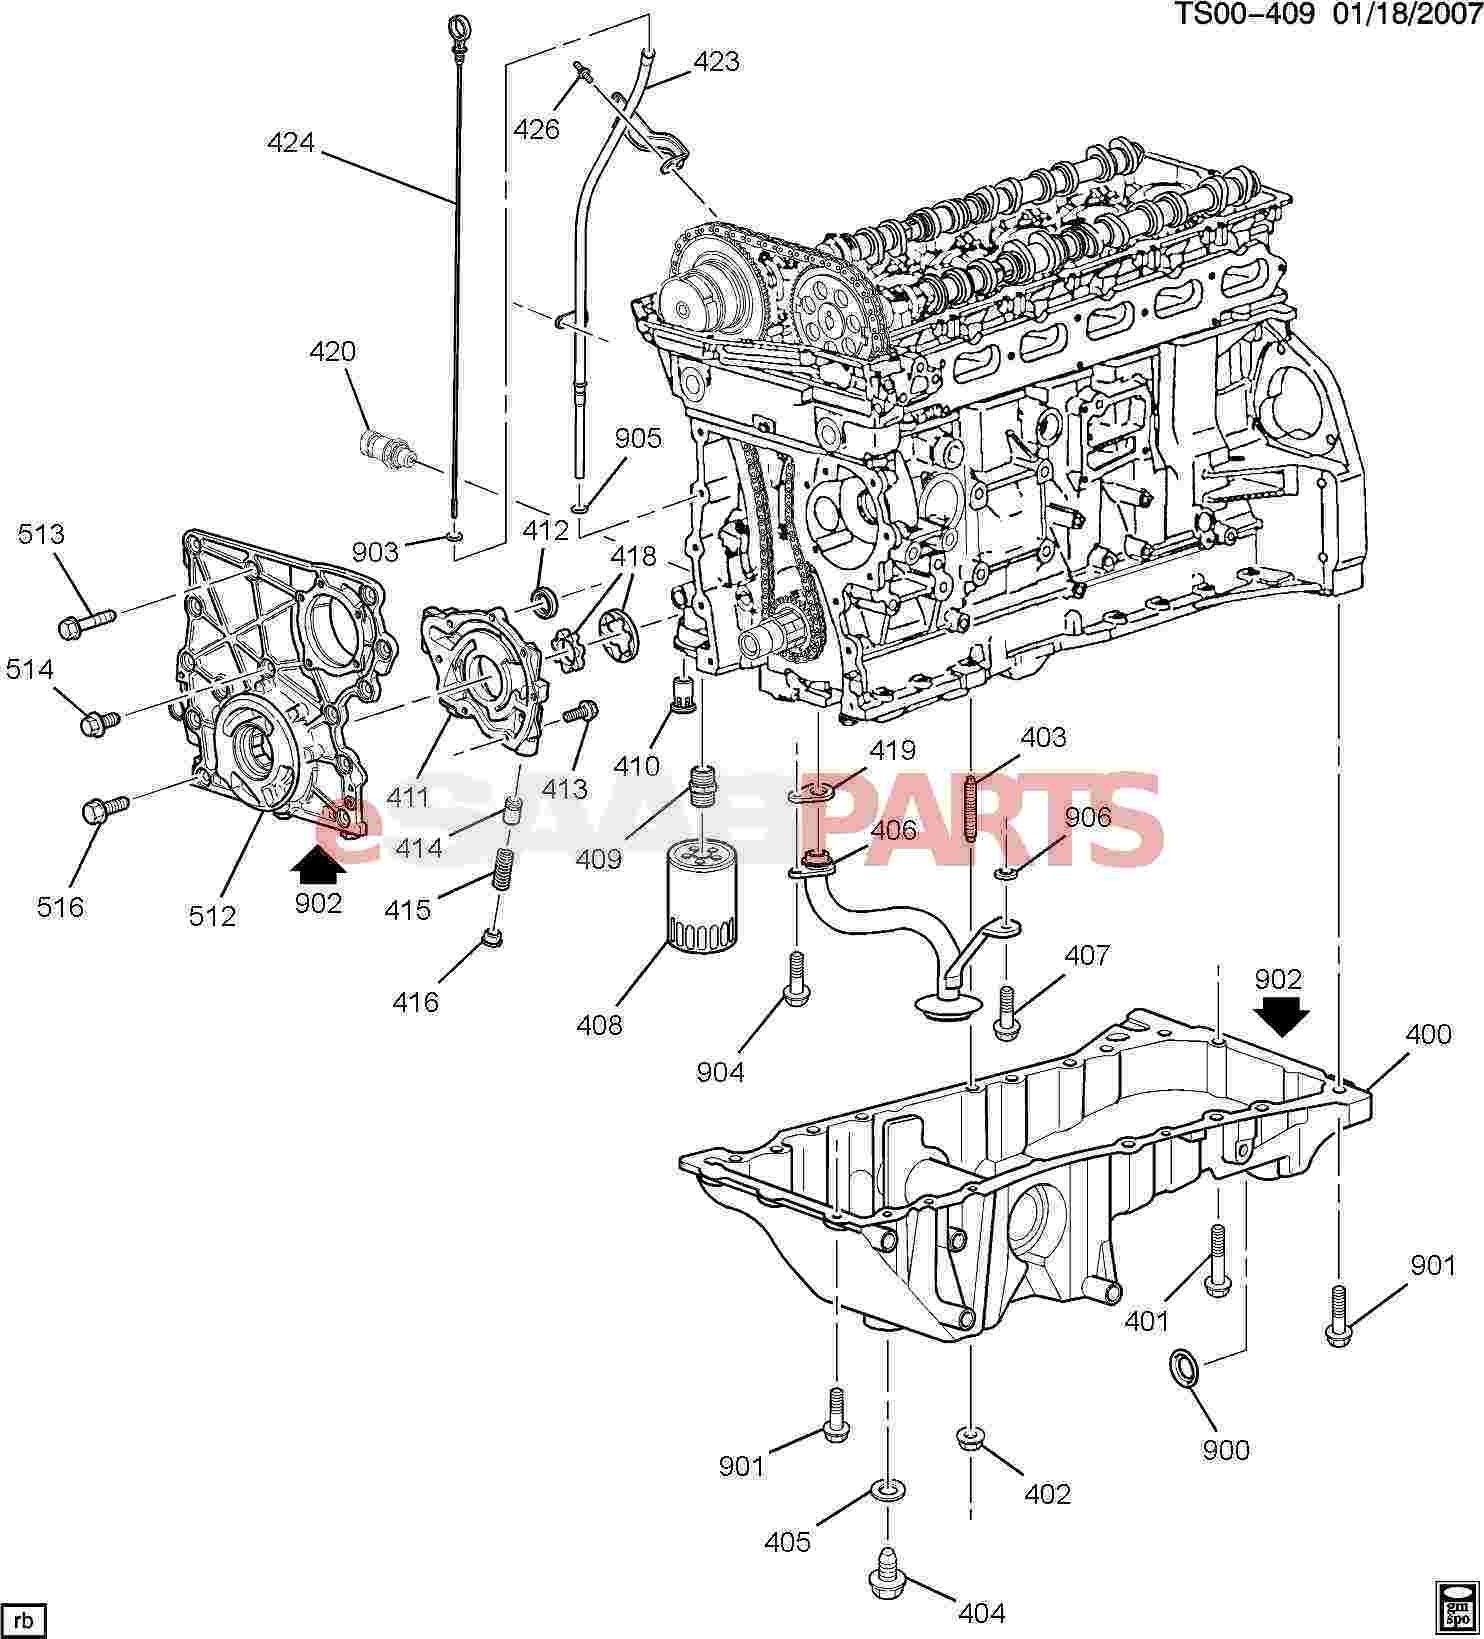 Engine Parts Diagram with Dimensions Auto Engine Parts Diagram Esaabparts Saab 9 7x Engine Parts Engine Of Engine Parts Diagram with Dimensions